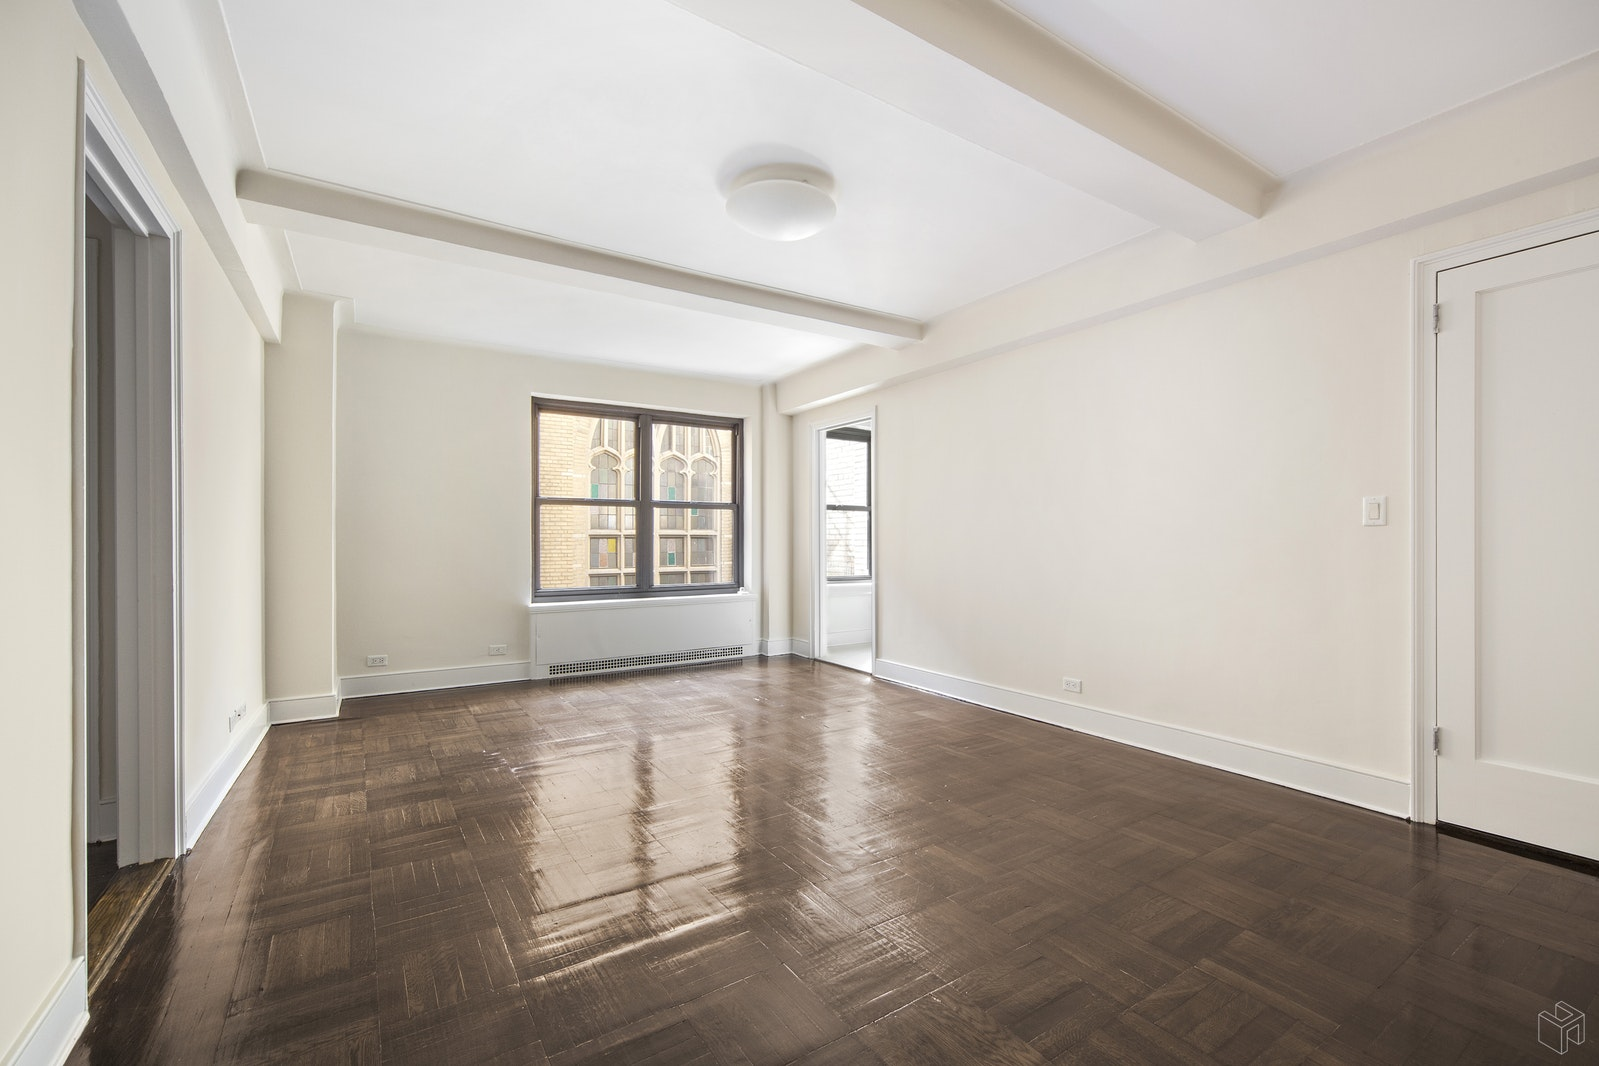 56 Seventh Avenue, West Village, NYC, 10011, Price Not Disclosed, Rented Property, Halstead Real Estate, Photo 1